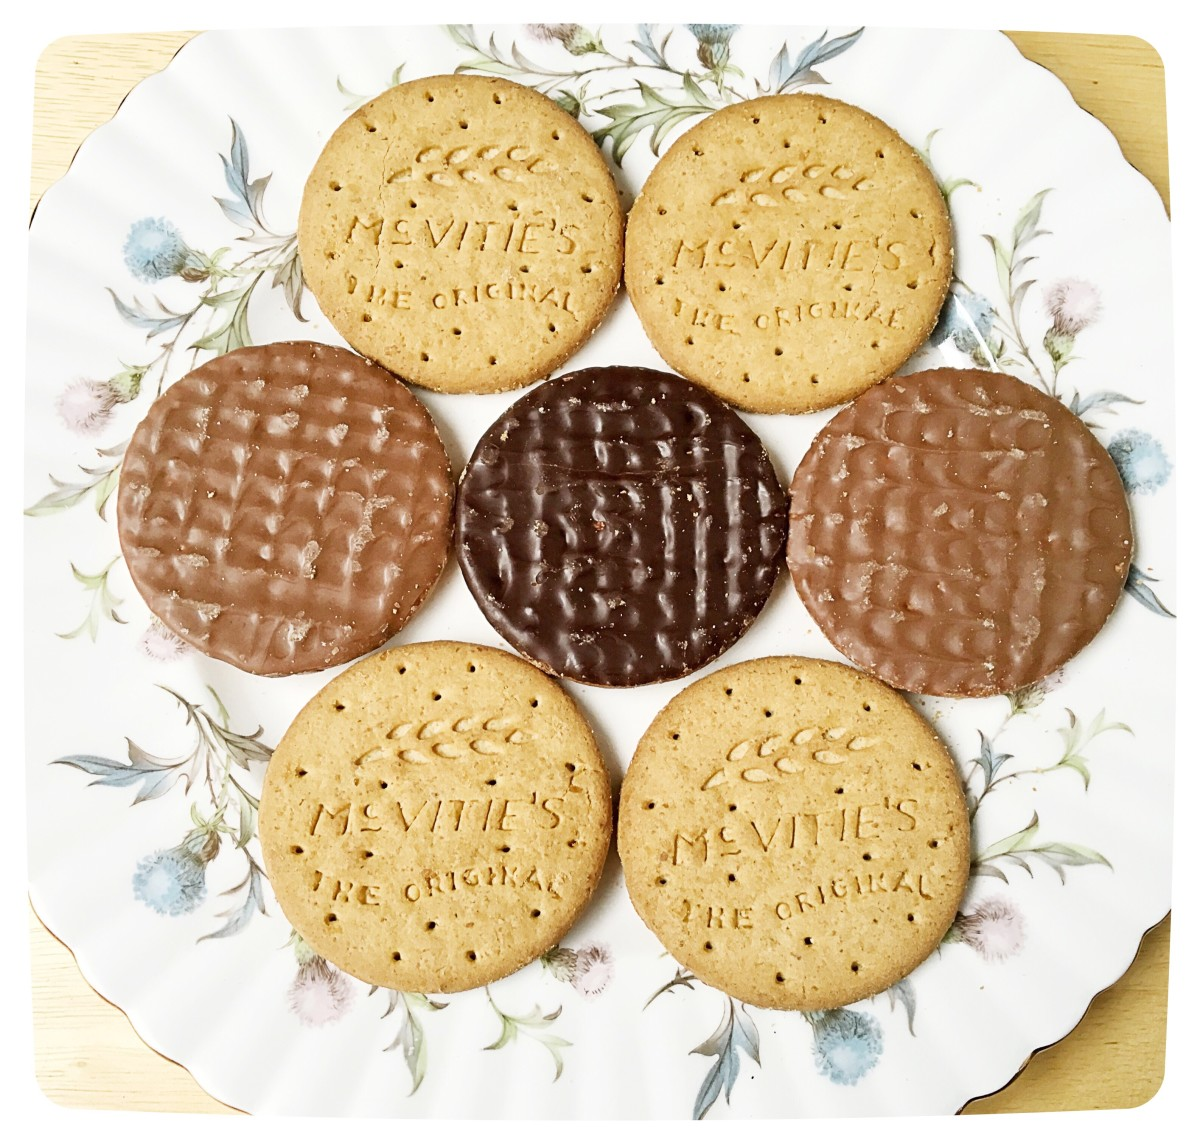 McVitie's History, Digestive Biscuits, and Jaffa Cakes